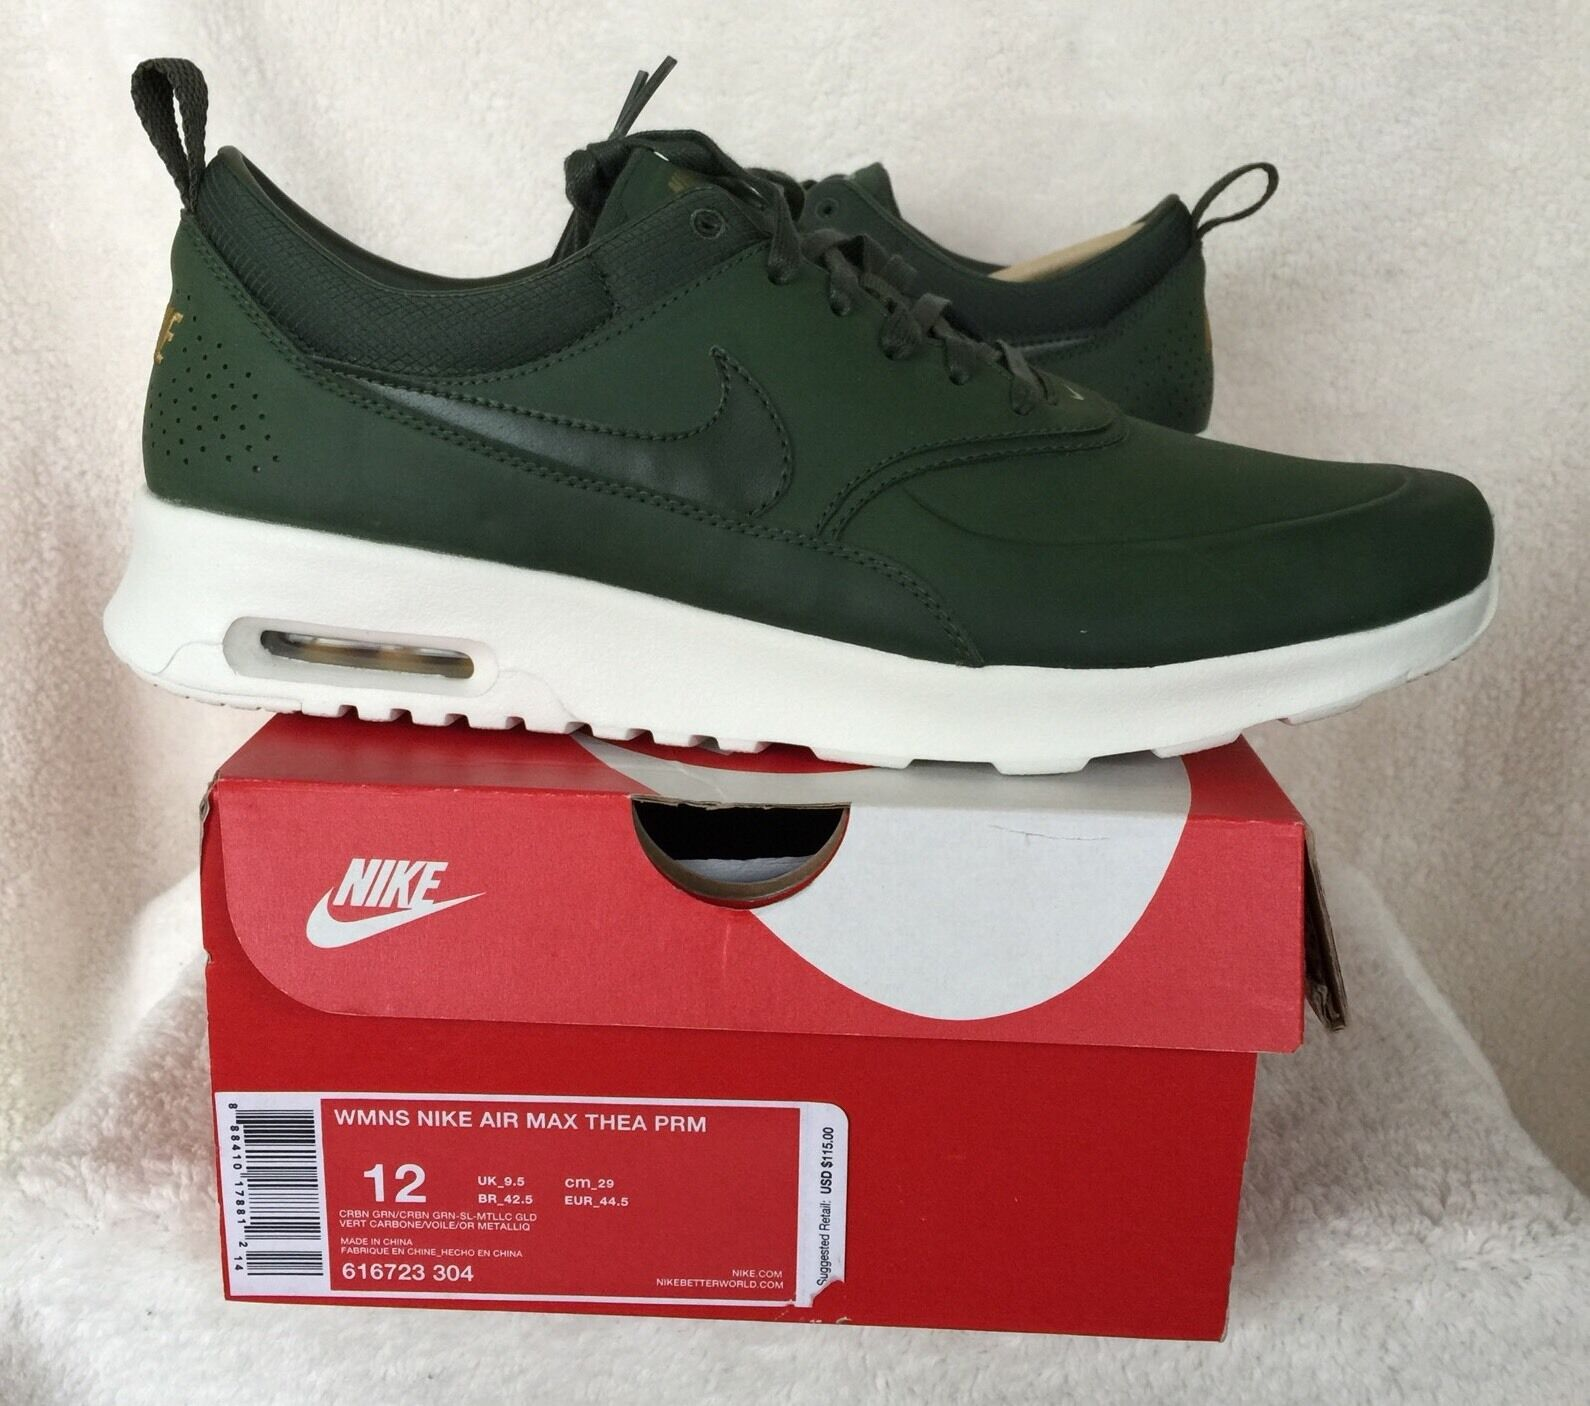 hot sale online 671cb 92aa5 Nike Air Max Thea Premium Womens 616723-304 Carbon Green Running Shoes Size  12 for sale online  eBay